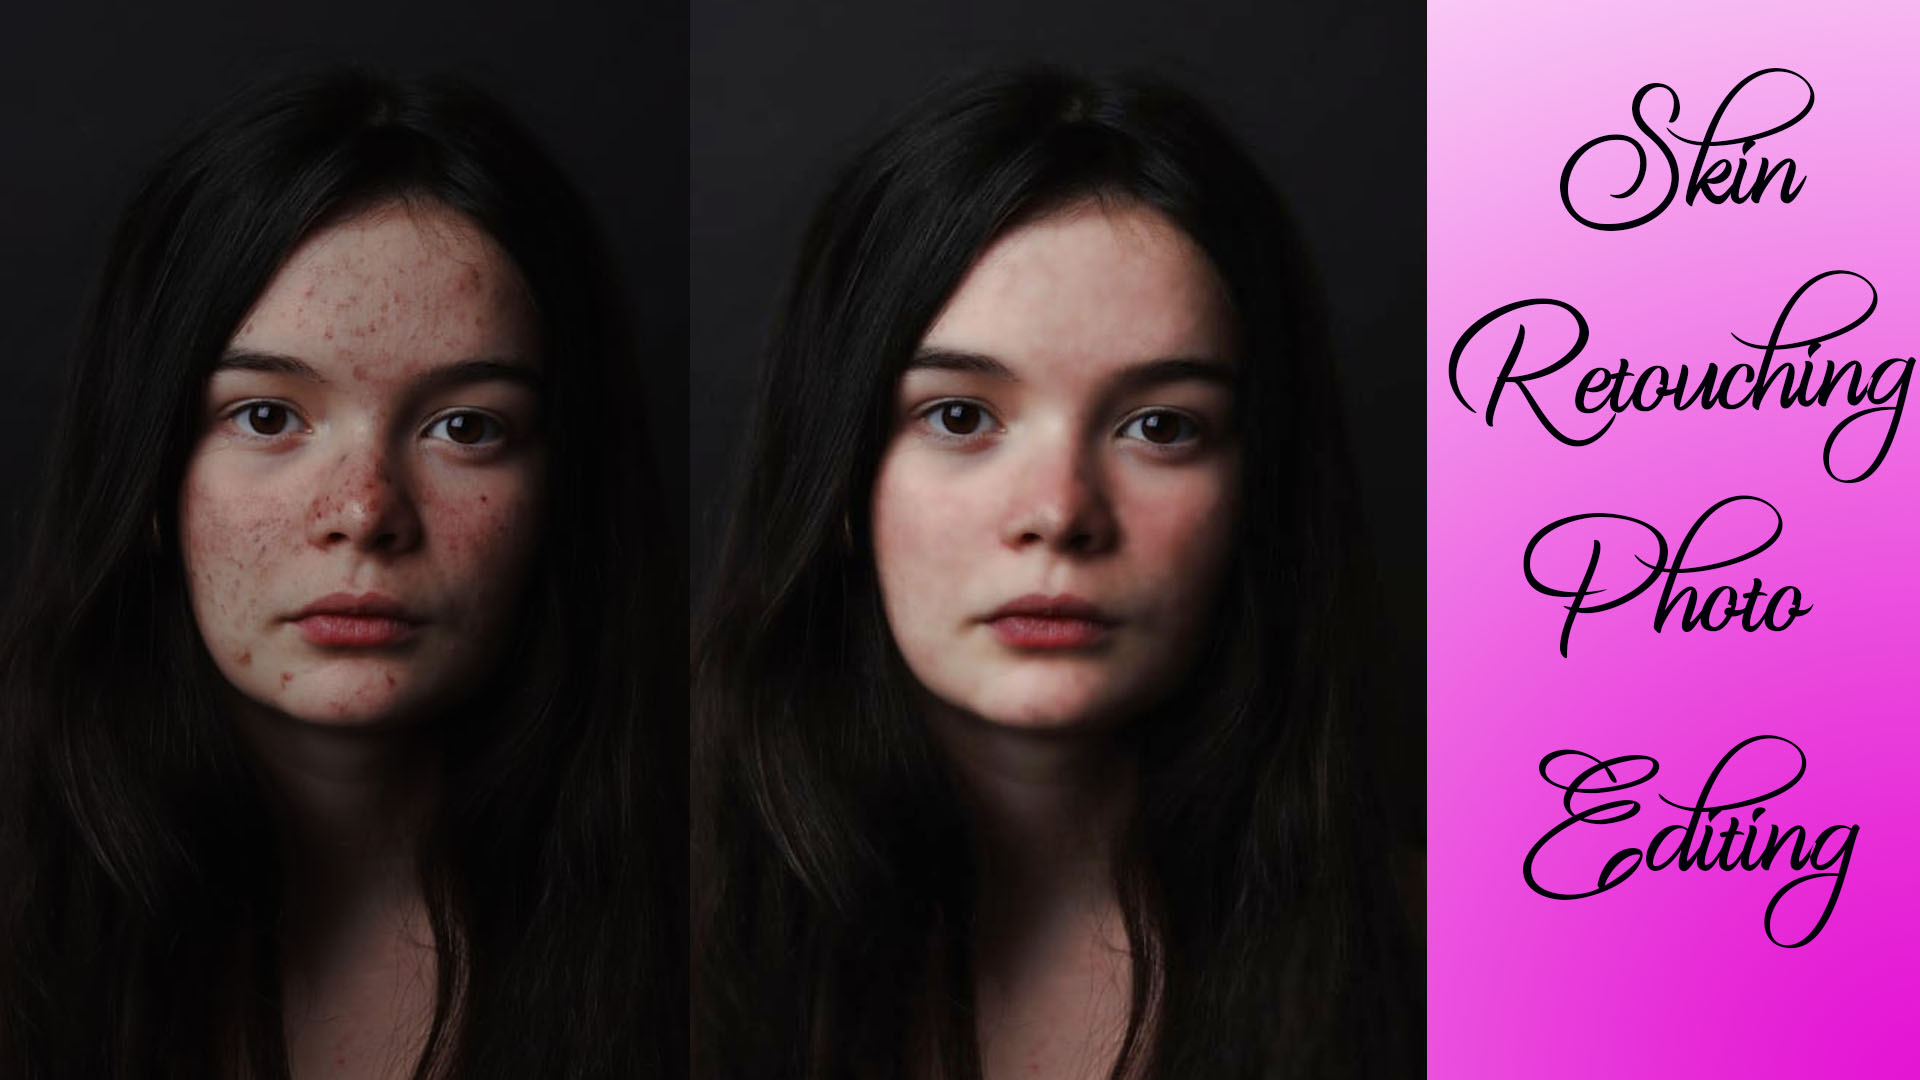 I Will Do High End Skin Retouching Photo Editing And Beauty Enhancement